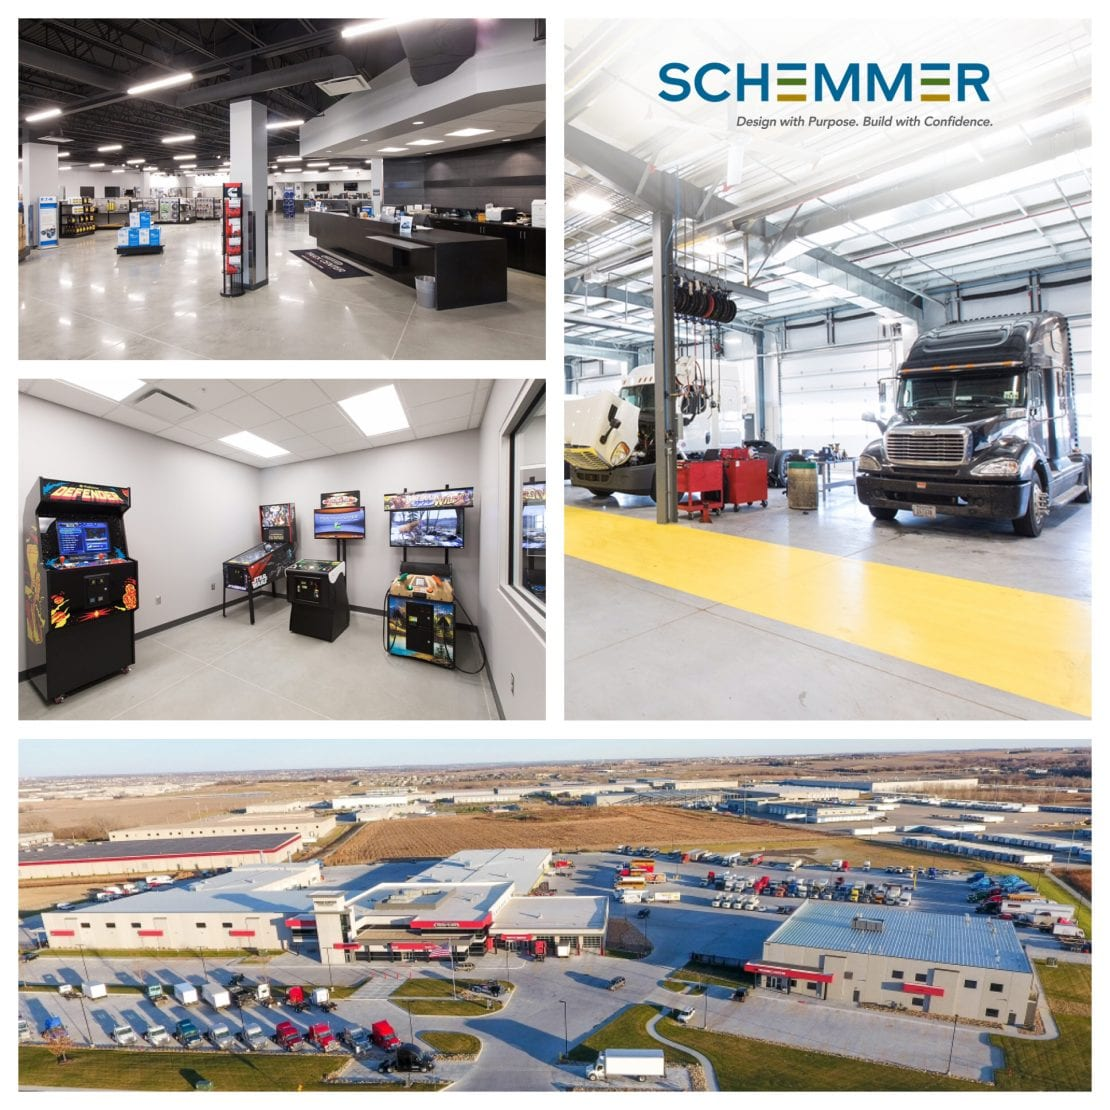 Schemmer also assisted Truck Center Companies